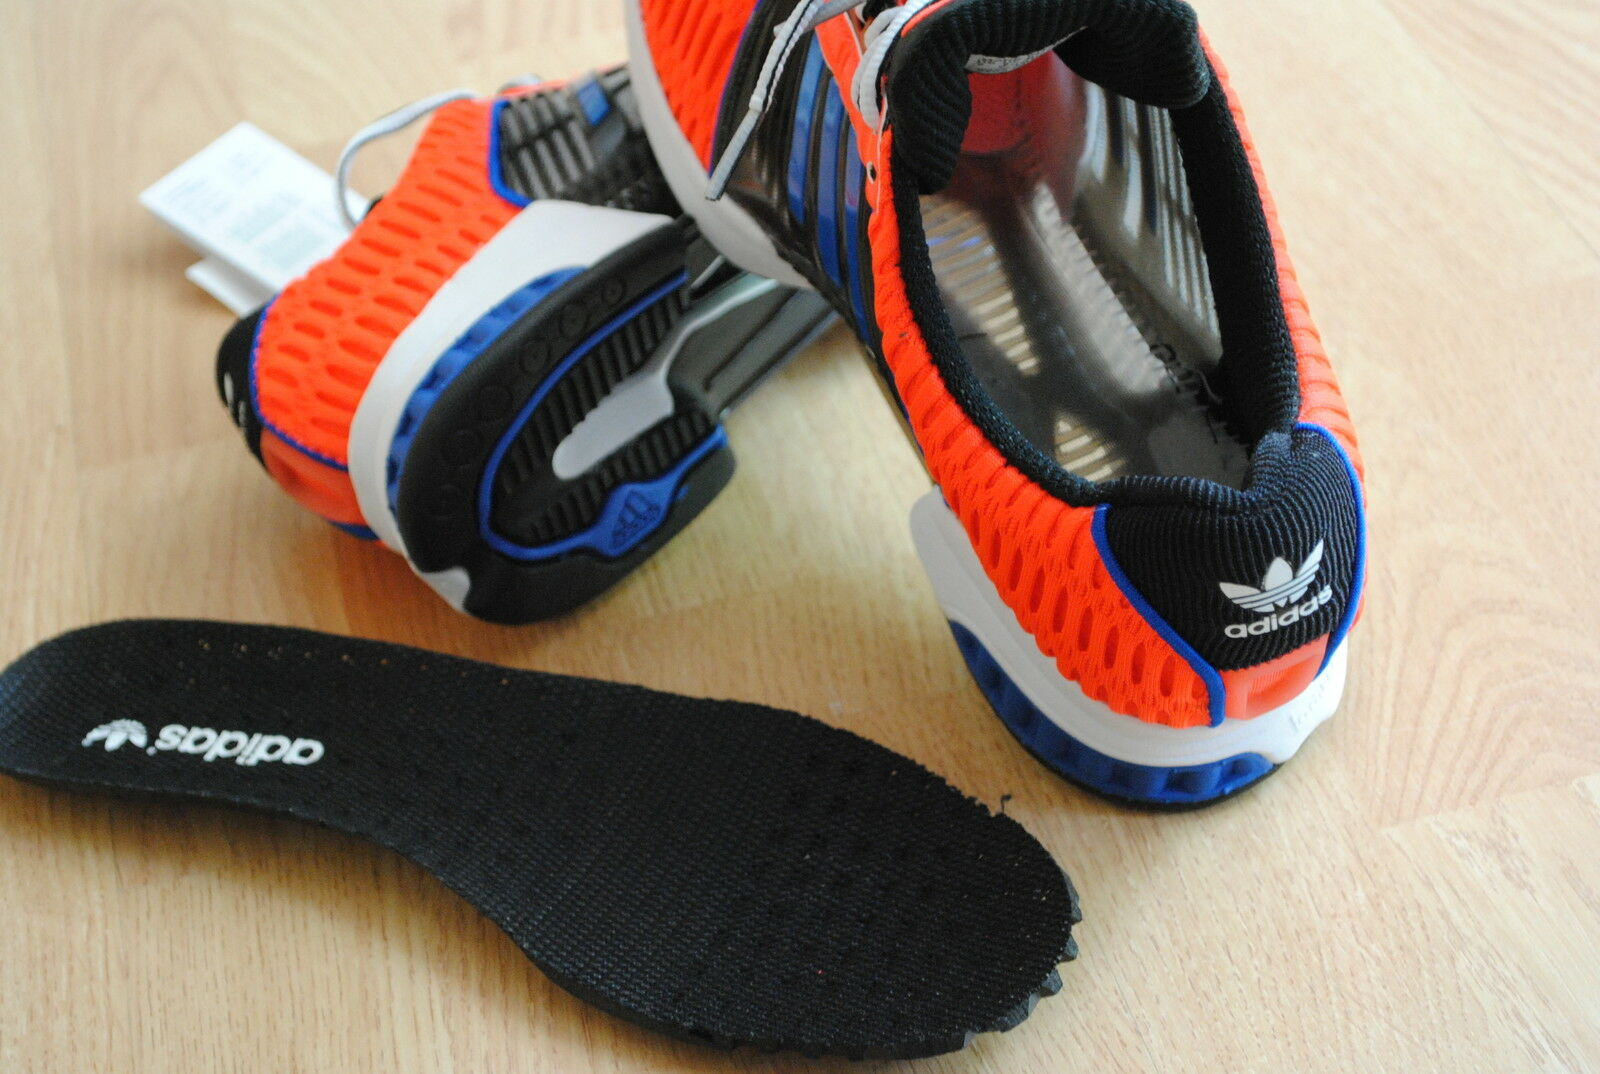 Adidas Cc 1 Torsion Clima Cool 40 40,5 41 Torsion 1 Deadstock Consortium g97370 cc1 e40c97